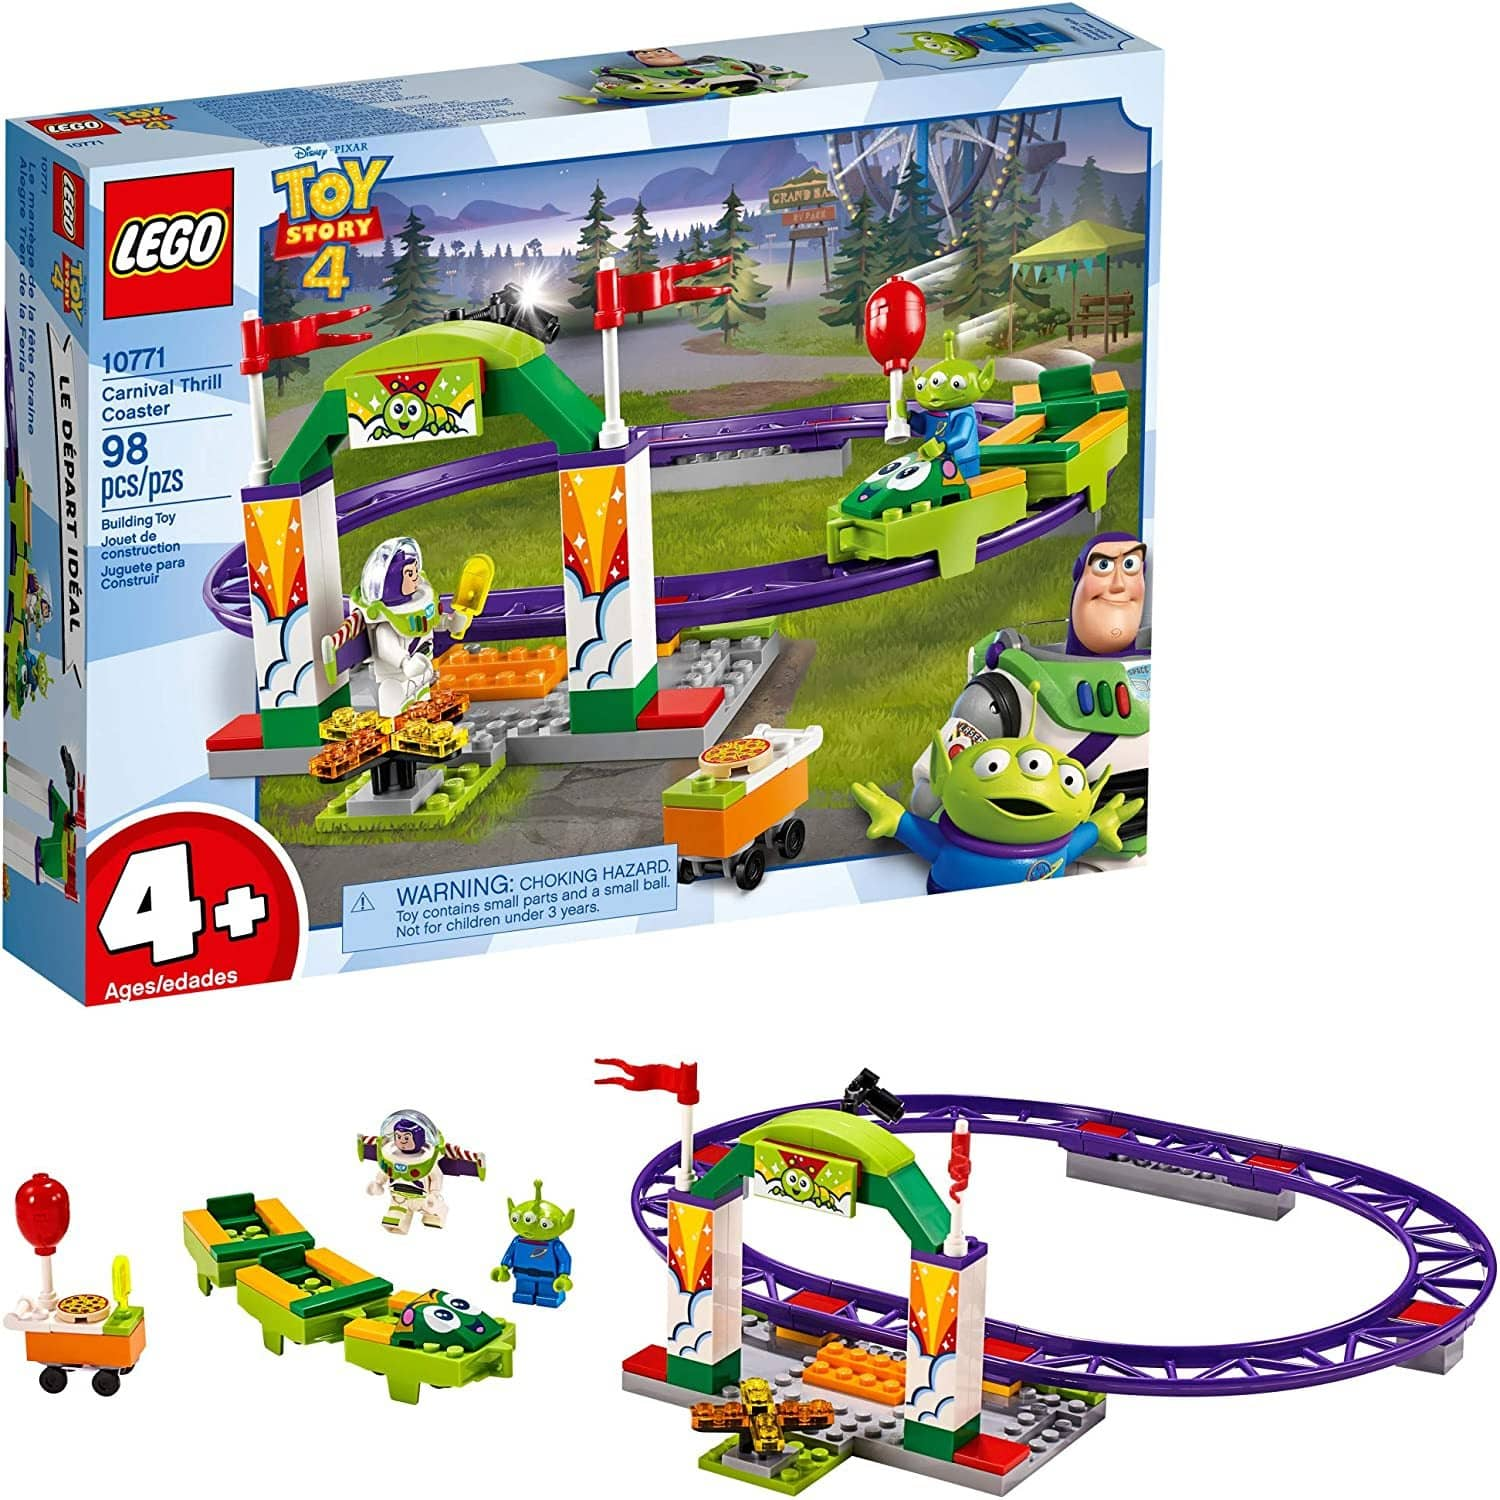 Lego | Disney Pixars Toy Story 4 Carnival Thrill Coaster 10771 Building Kit (98 Pieces)-Kidding Around NYC